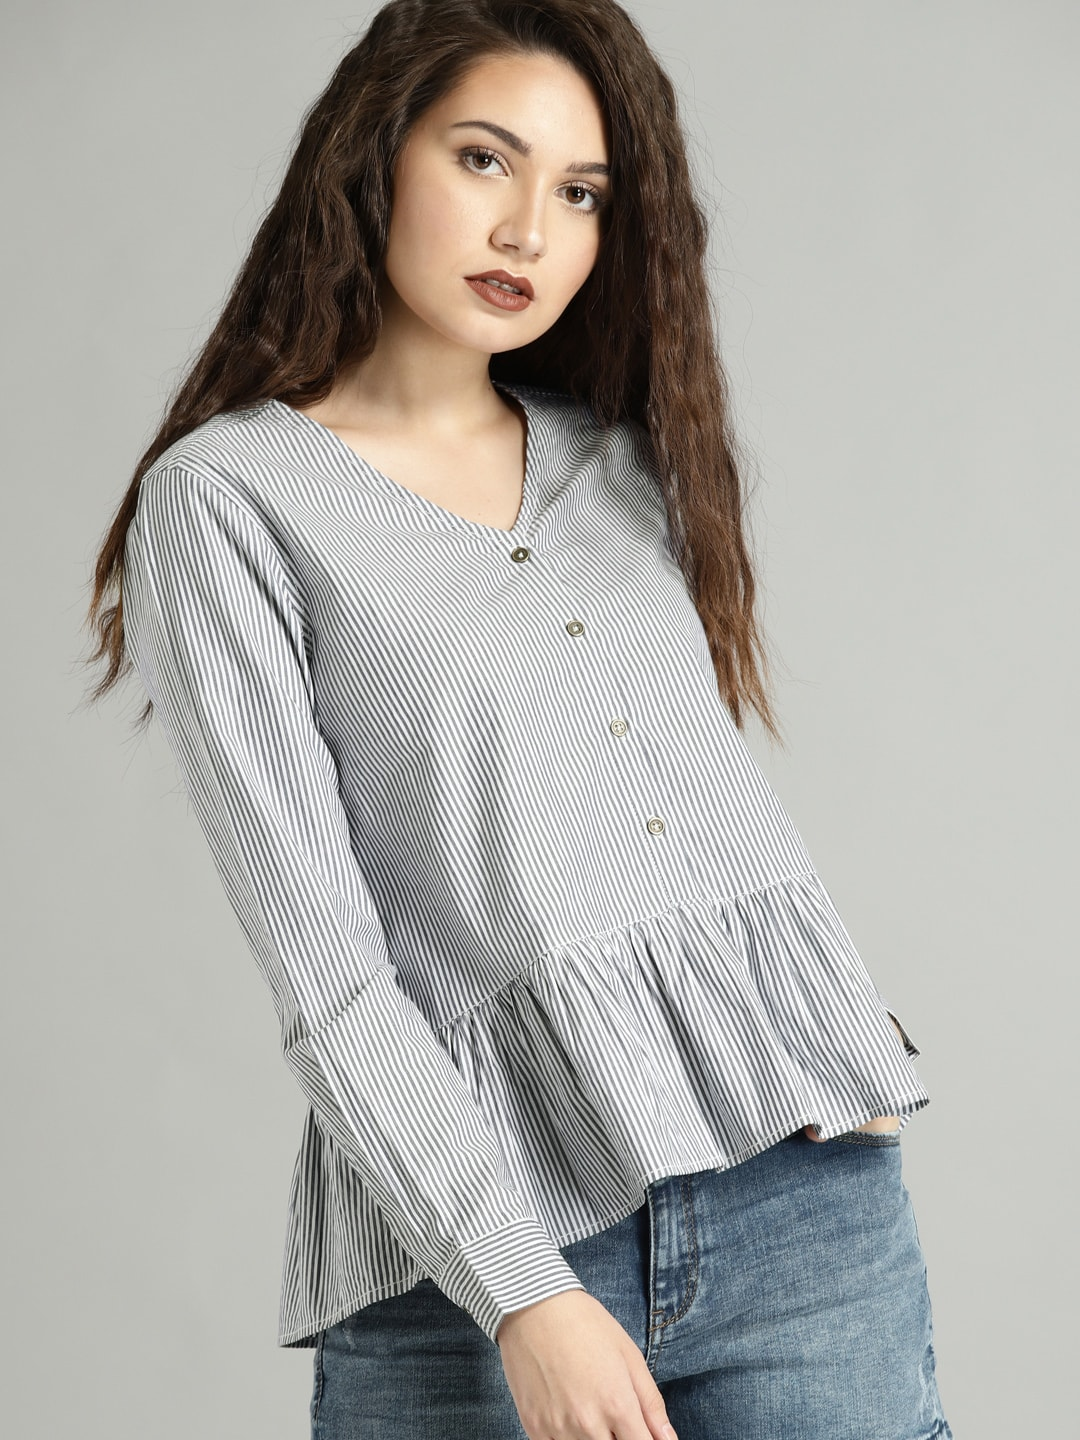 d6df86adaa85b New Neo Jeans Tops - Buy New Neo Jeans Tops online in India